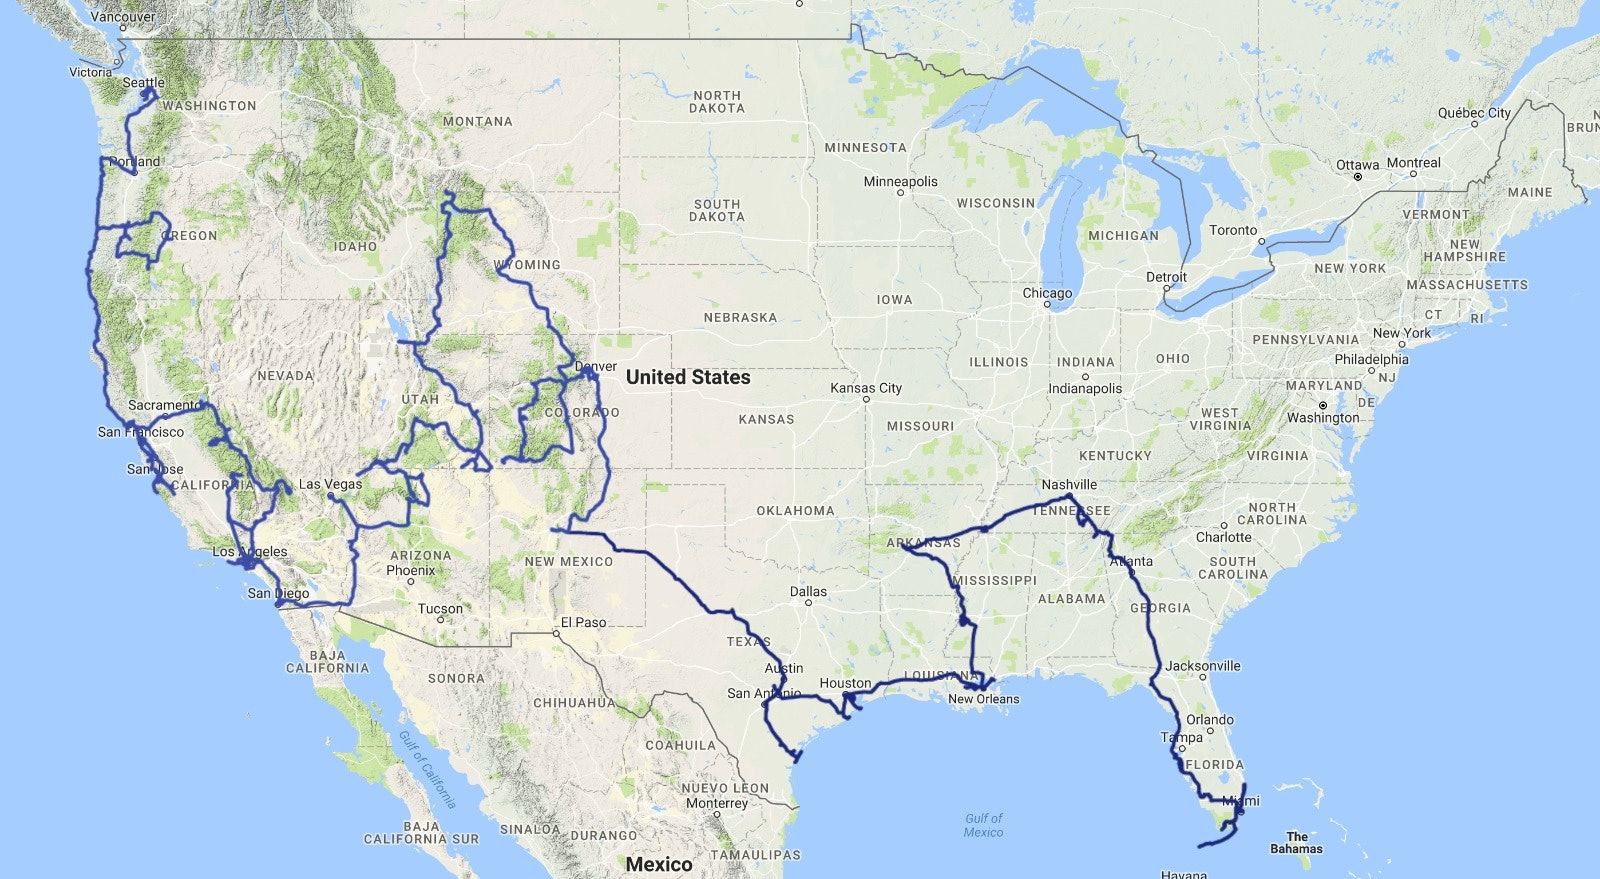 James and Thomas' route map.